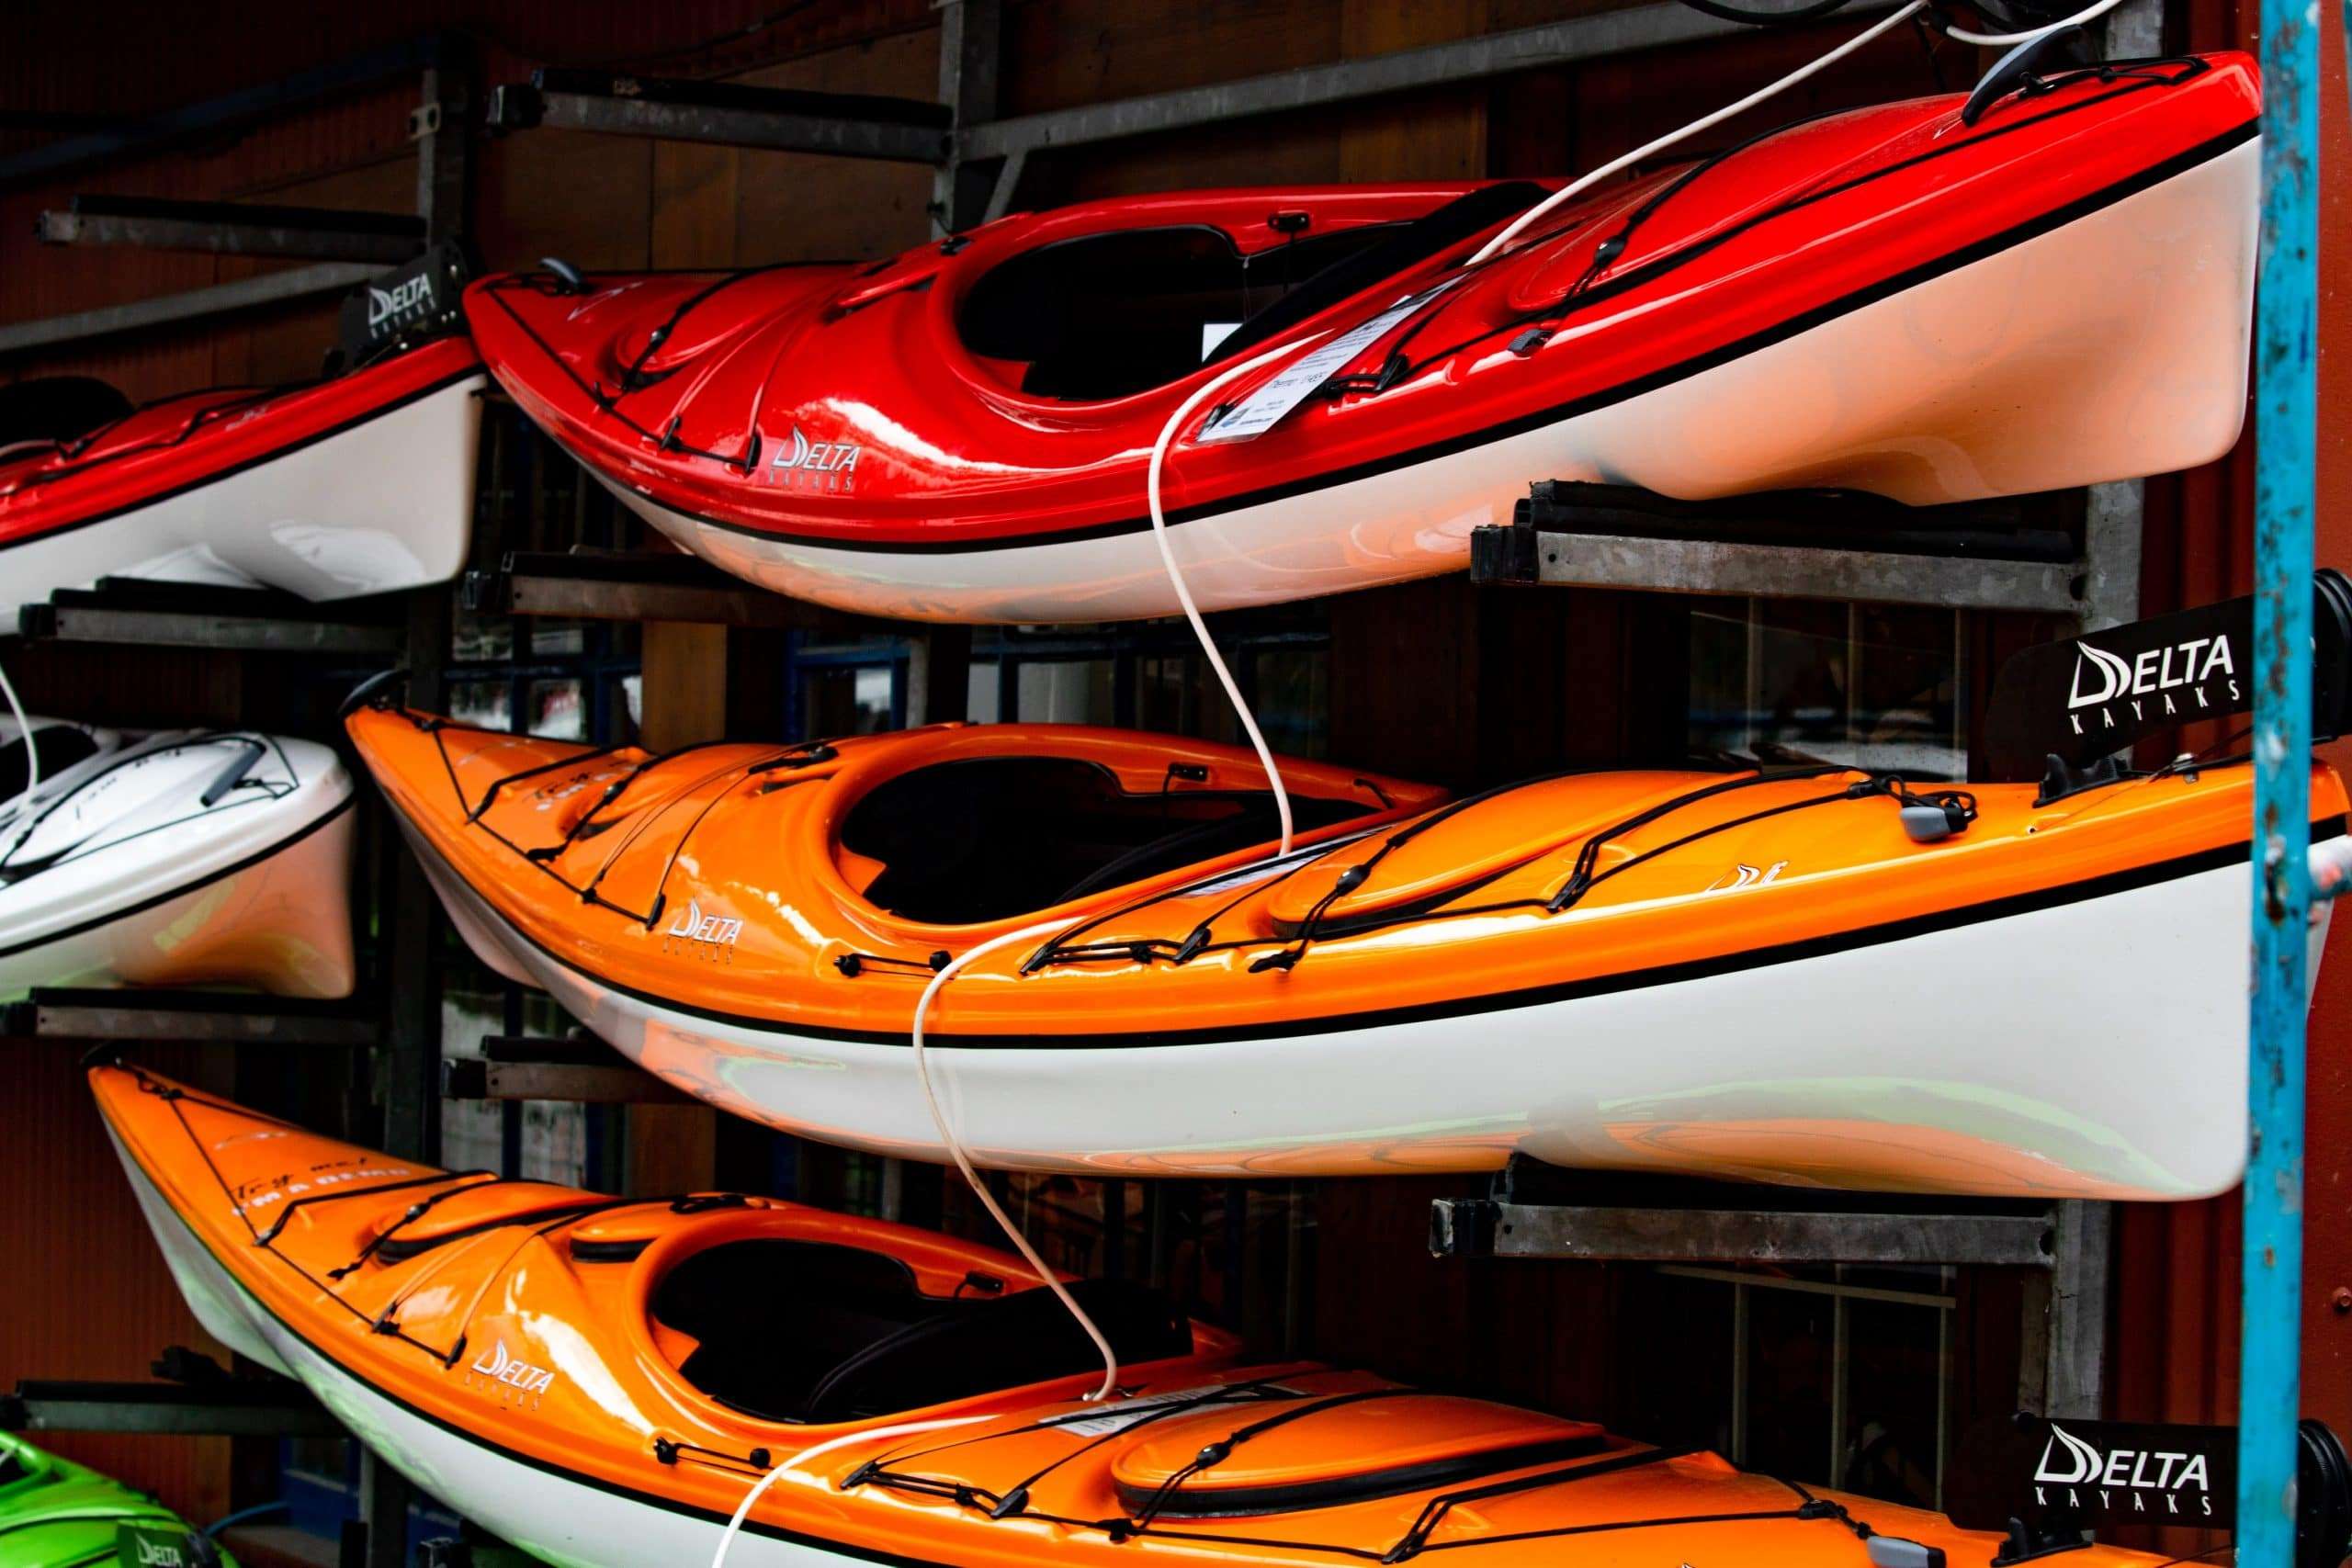 Which Is A Faster Kayak: Paddle Or Pedal?